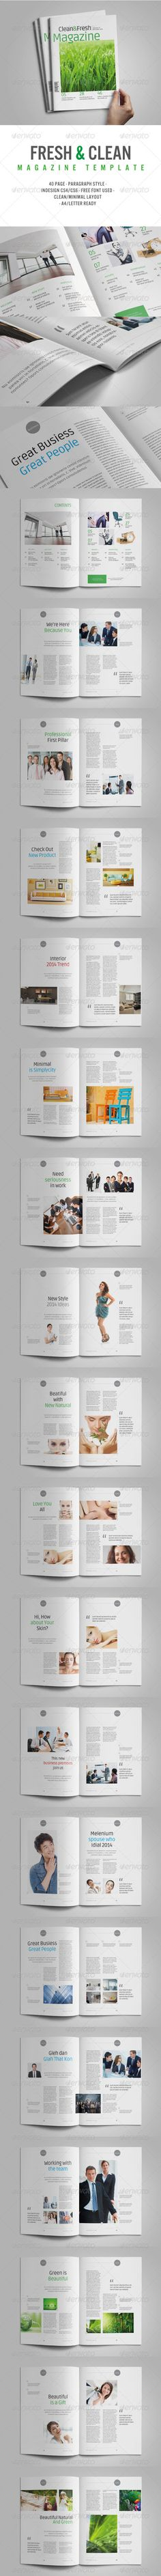 40 Page Fresh and Clean Layout #Employee Magazine #fashion #indesign #green #nature #$10